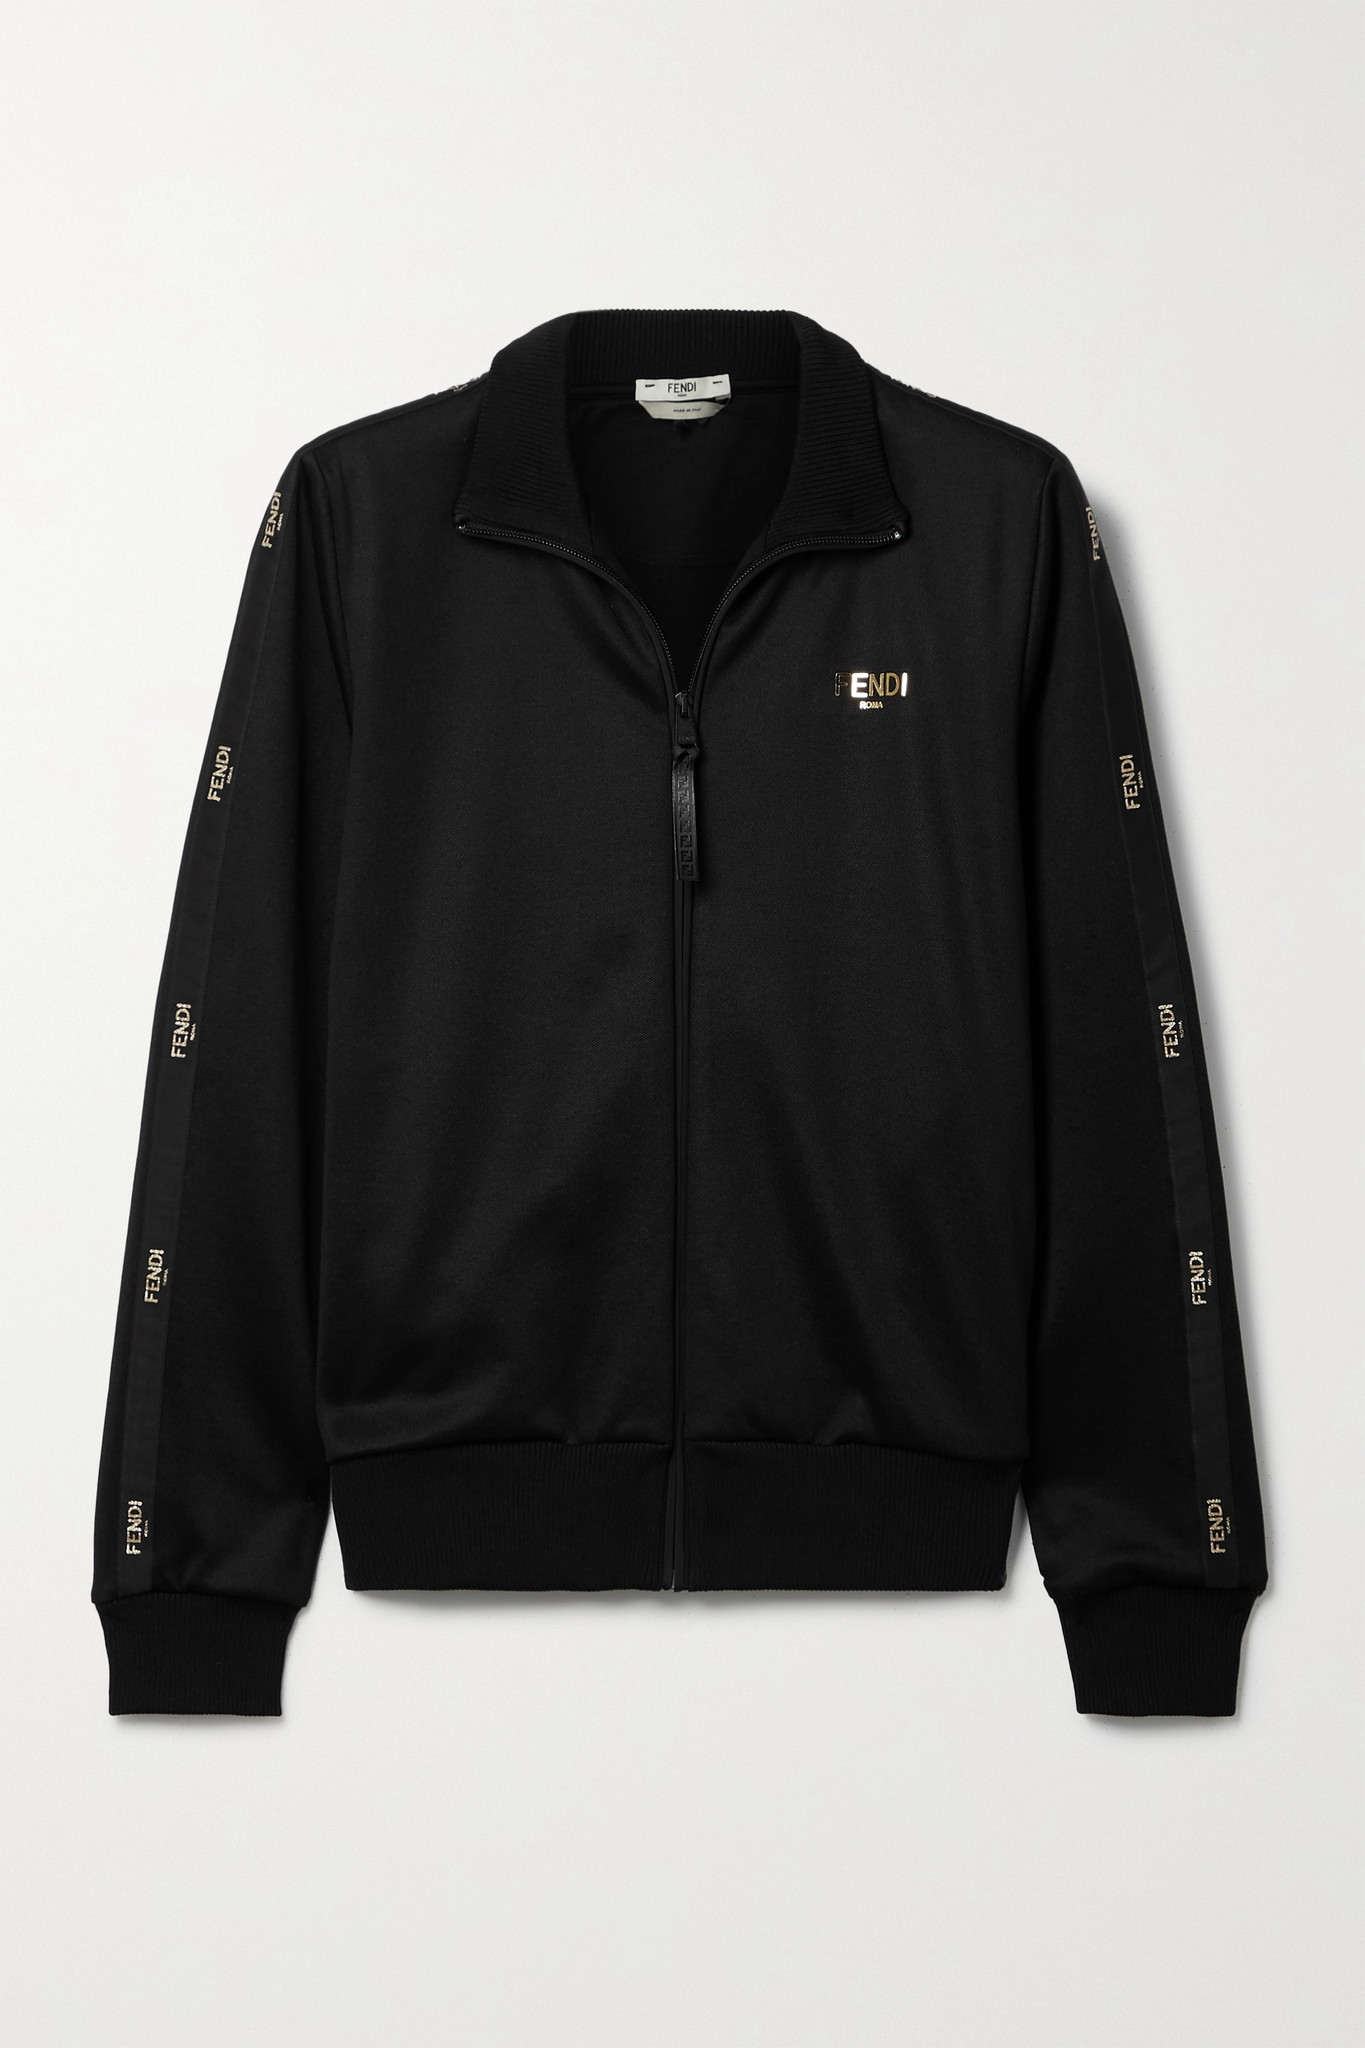 FENDI - Embroidered Satin-trimmed Tech-jersey Track Jacket - Black - IT38